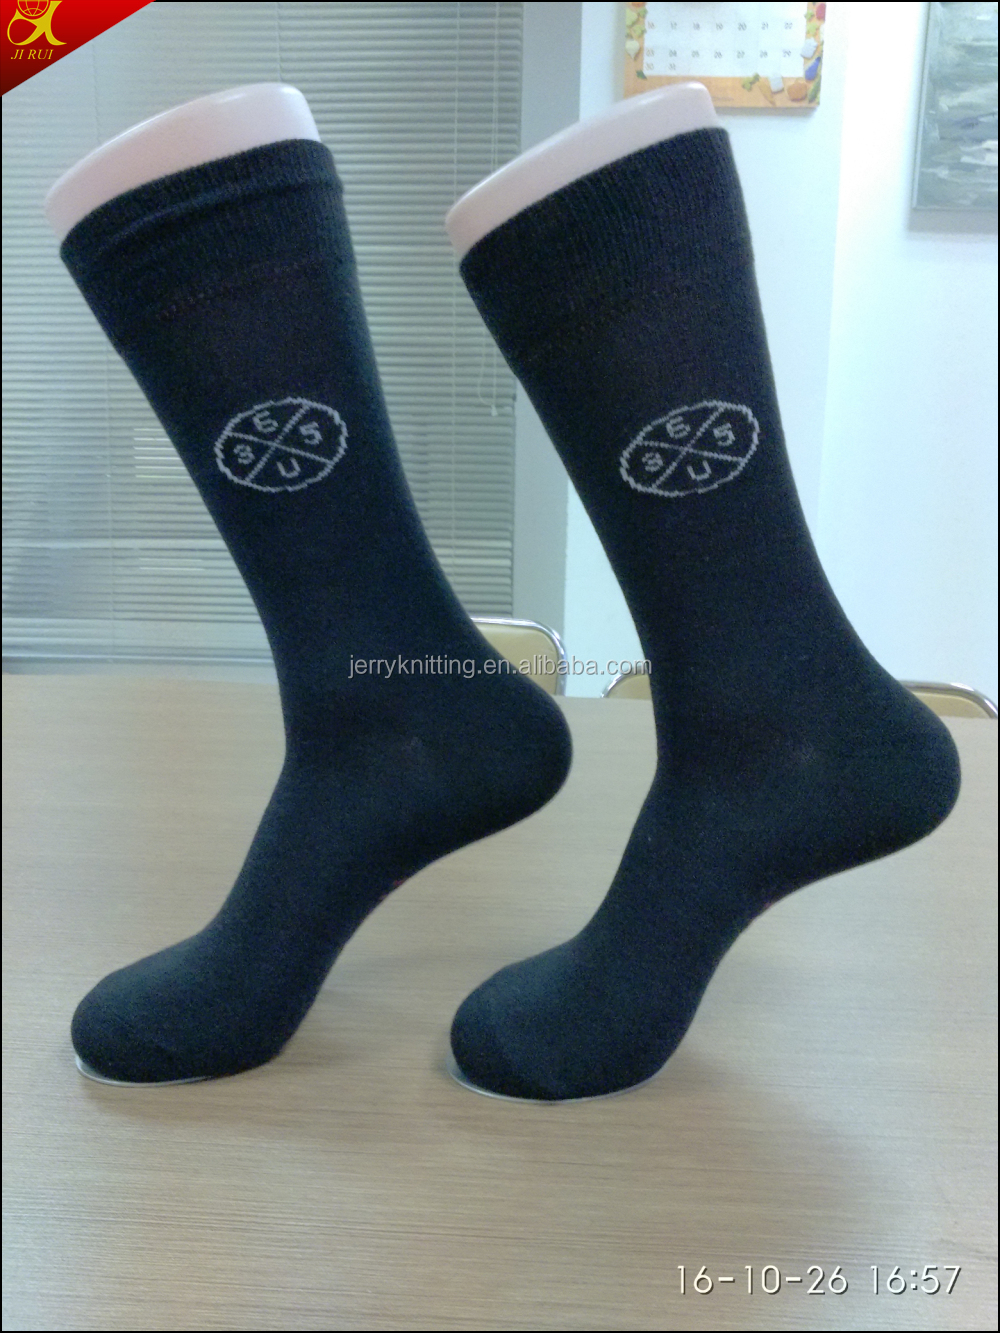 High quality cotton bamboo mens colorful dress socks hosiery black dress socks with logo